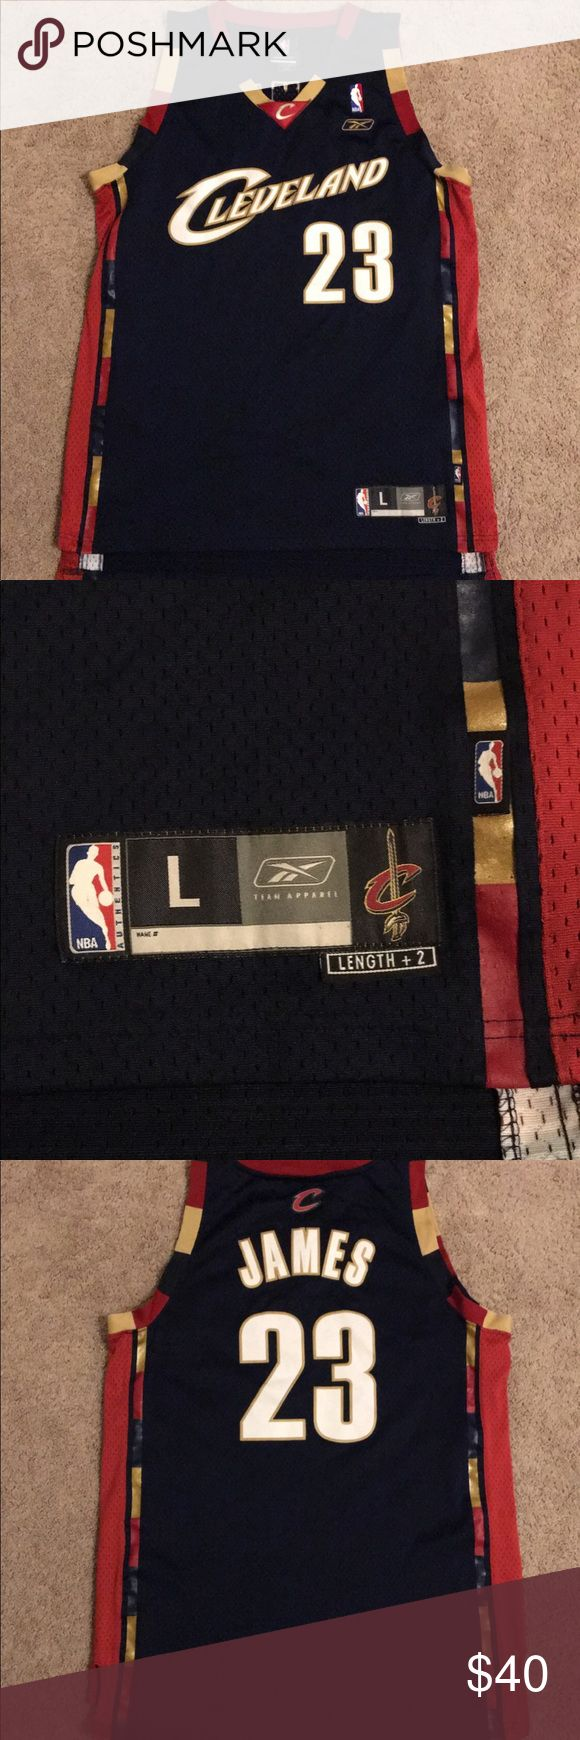 Cleveland Cavaliers Lebron James Jersey Good overall condition   smoke free household and no pets   will ship ASAP Reebok Shirts Tank Tops